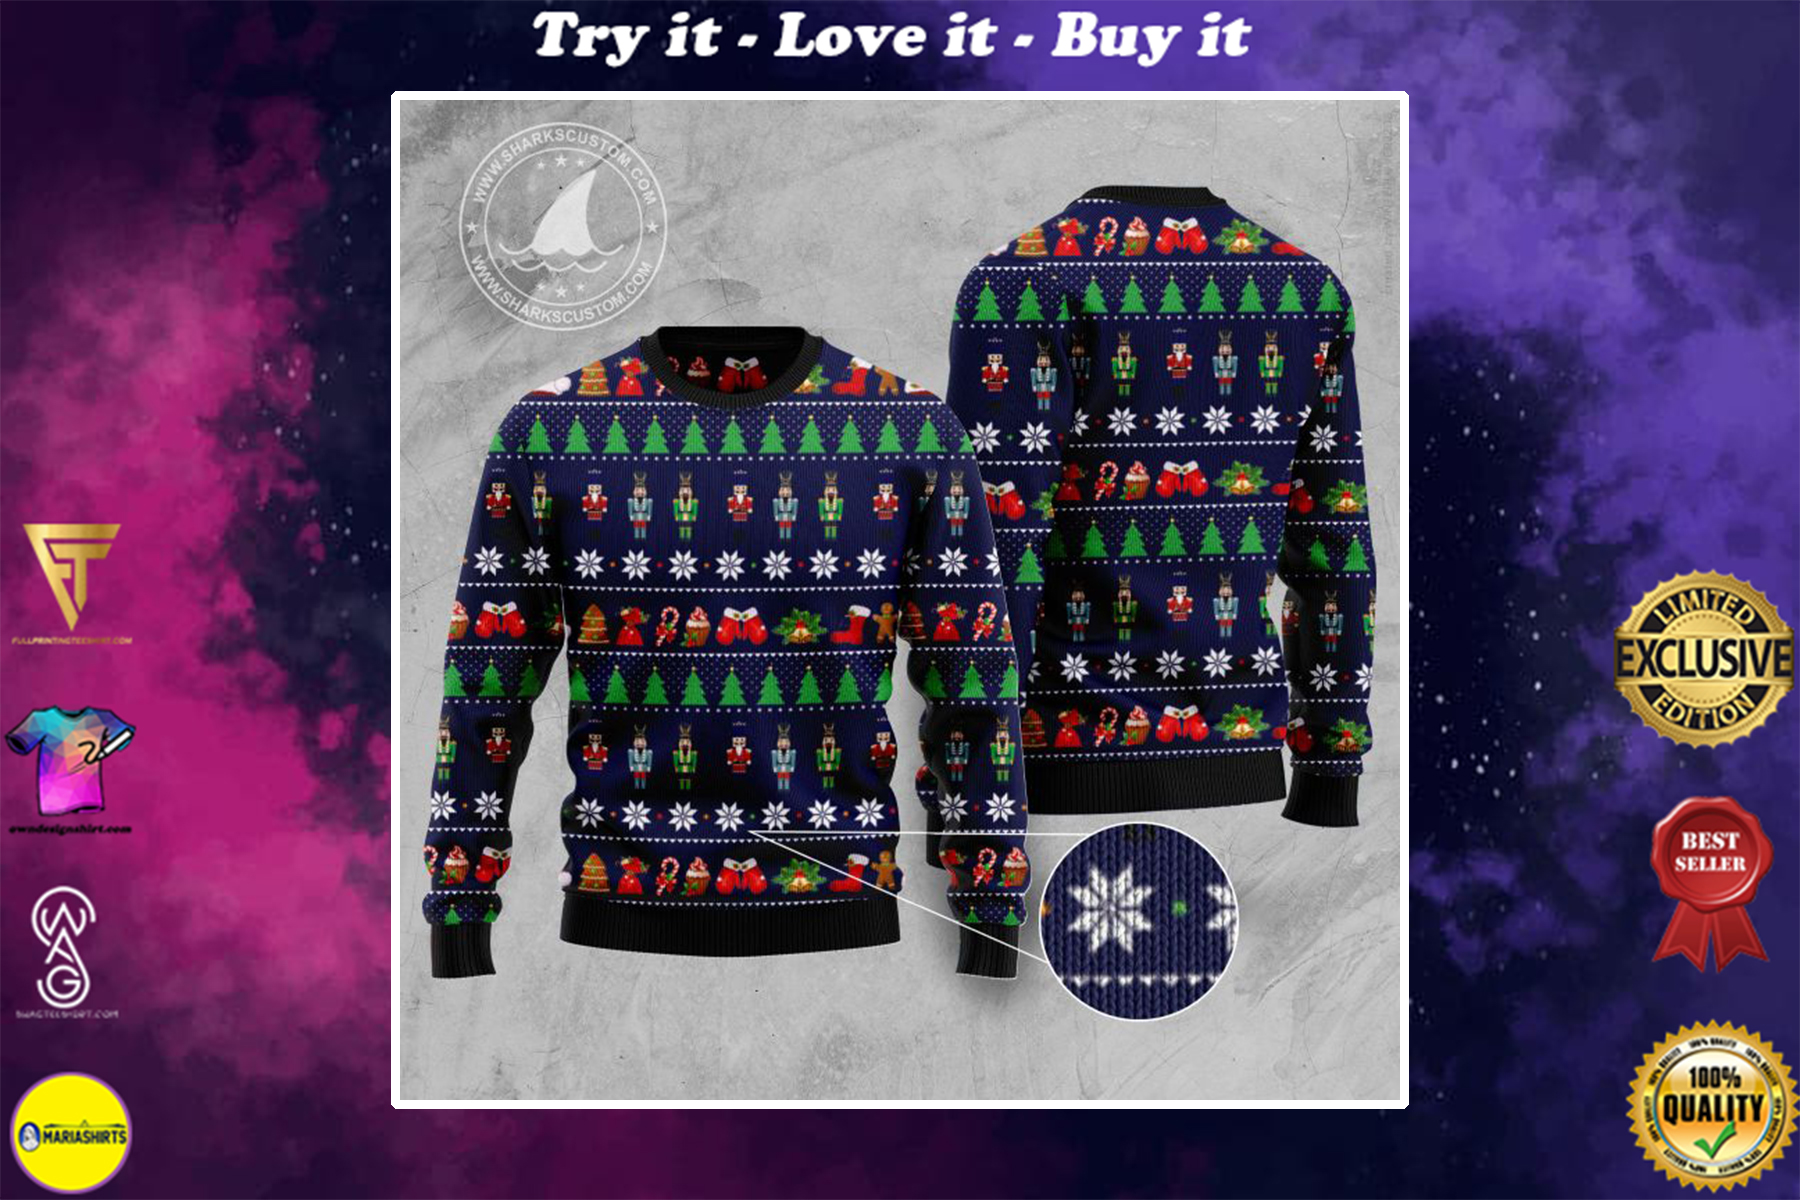 [special edition] the nutcracker all over printed ugly christmas sweater - maria